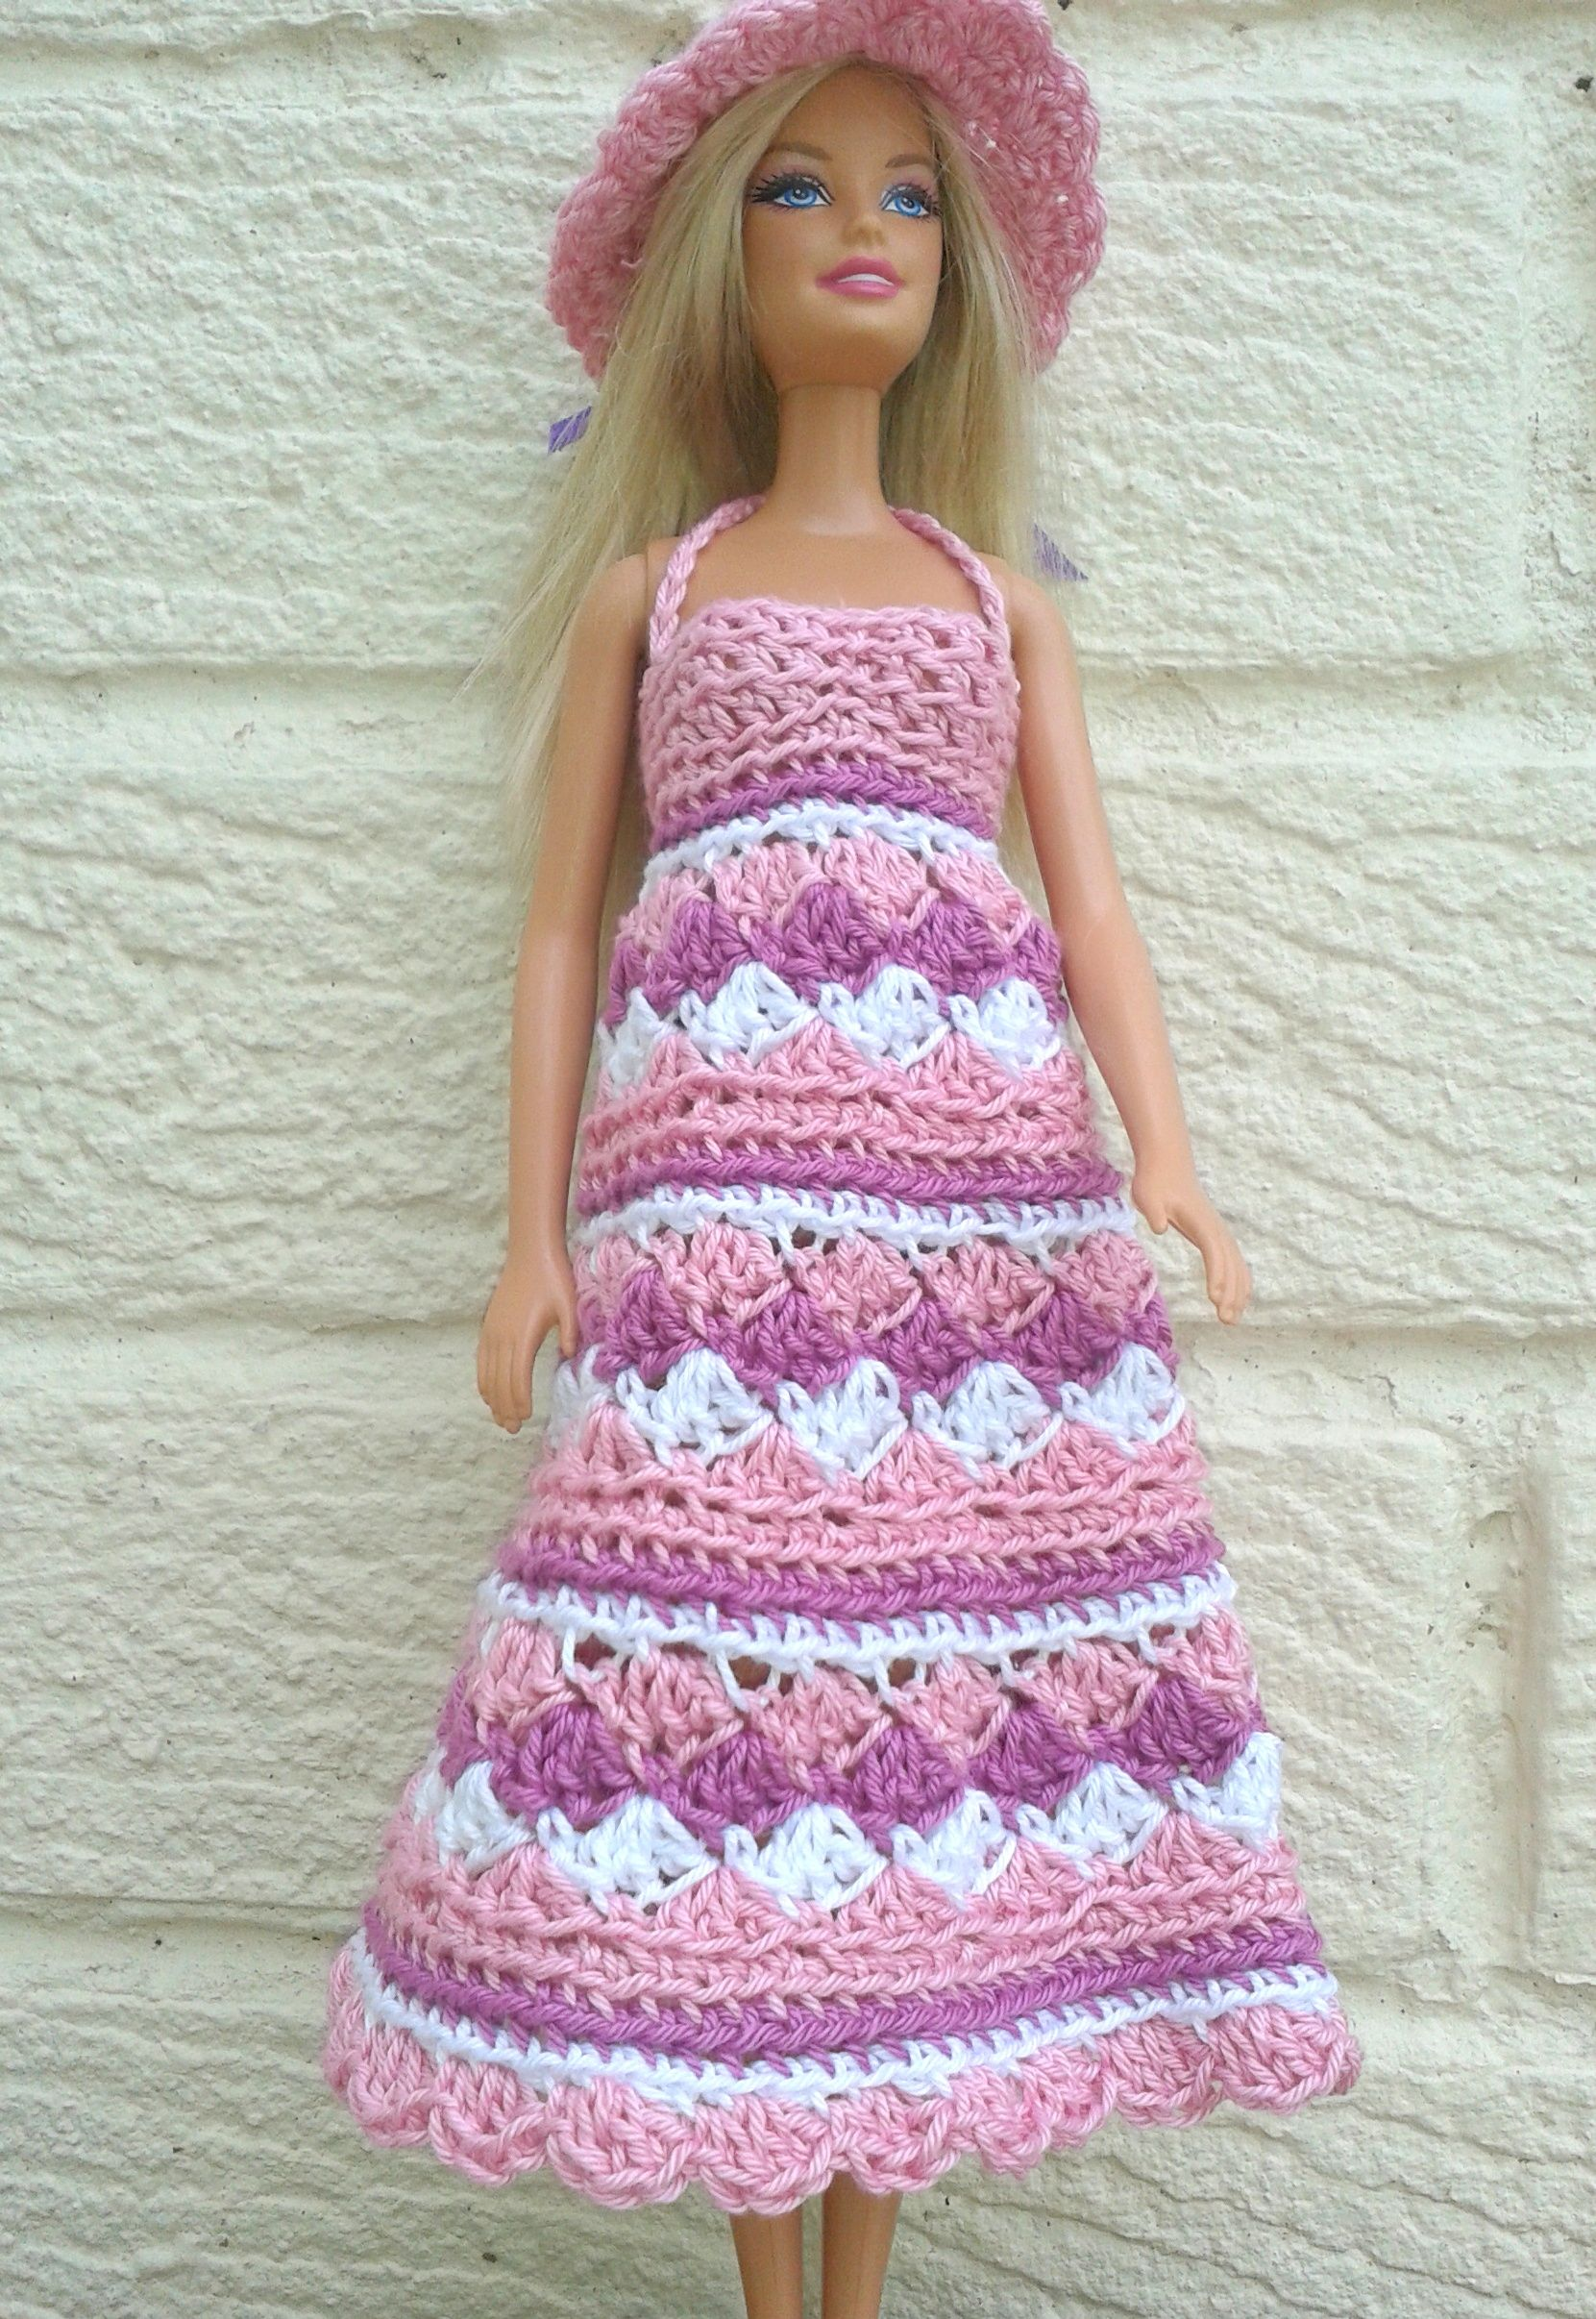 Another crochet sundress for barbie Free pattern on Ravelry